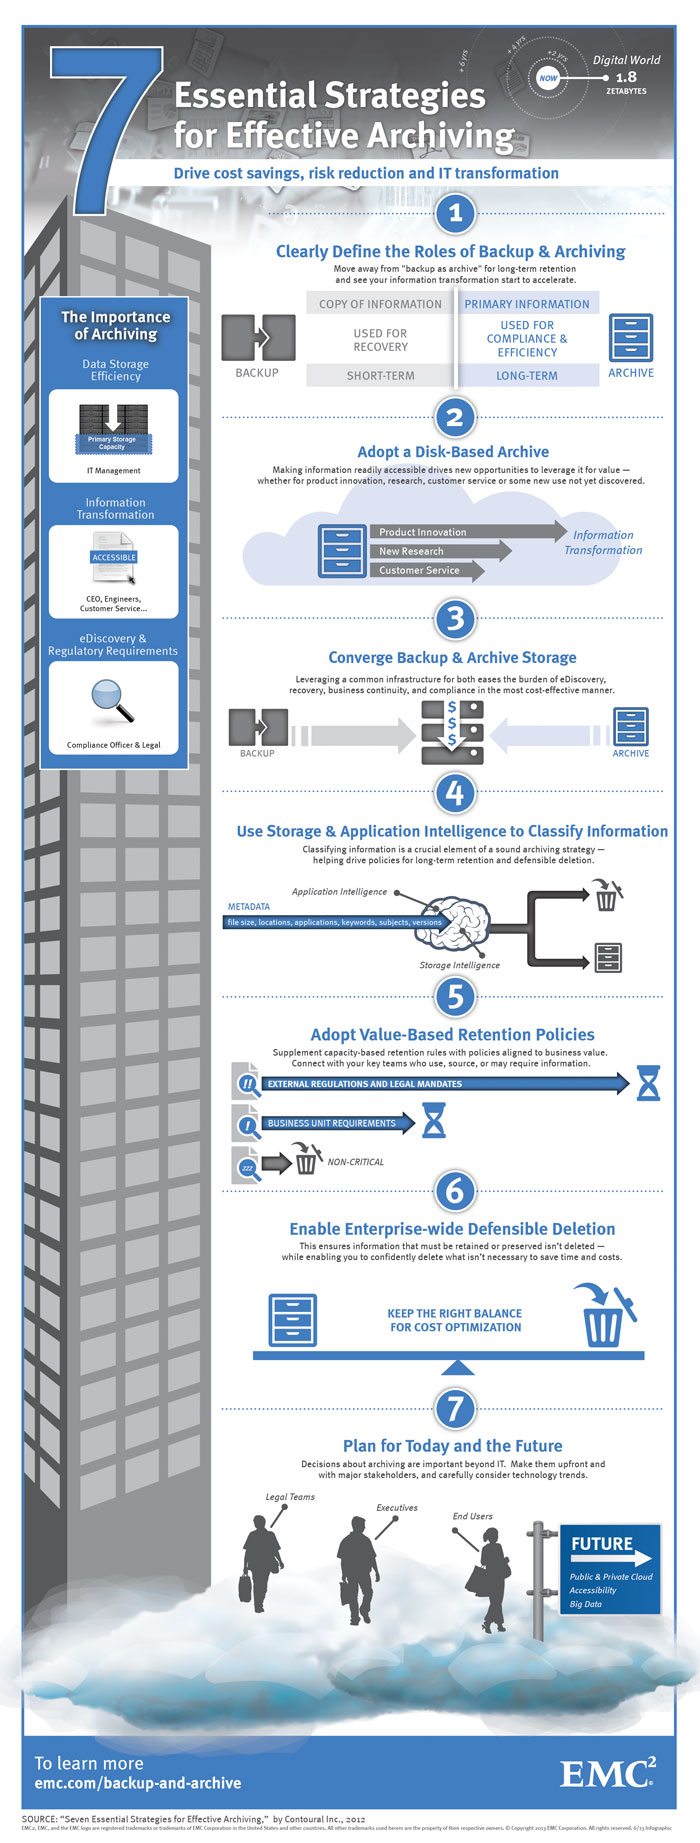 seven-essentials-archiving-infographic-700px